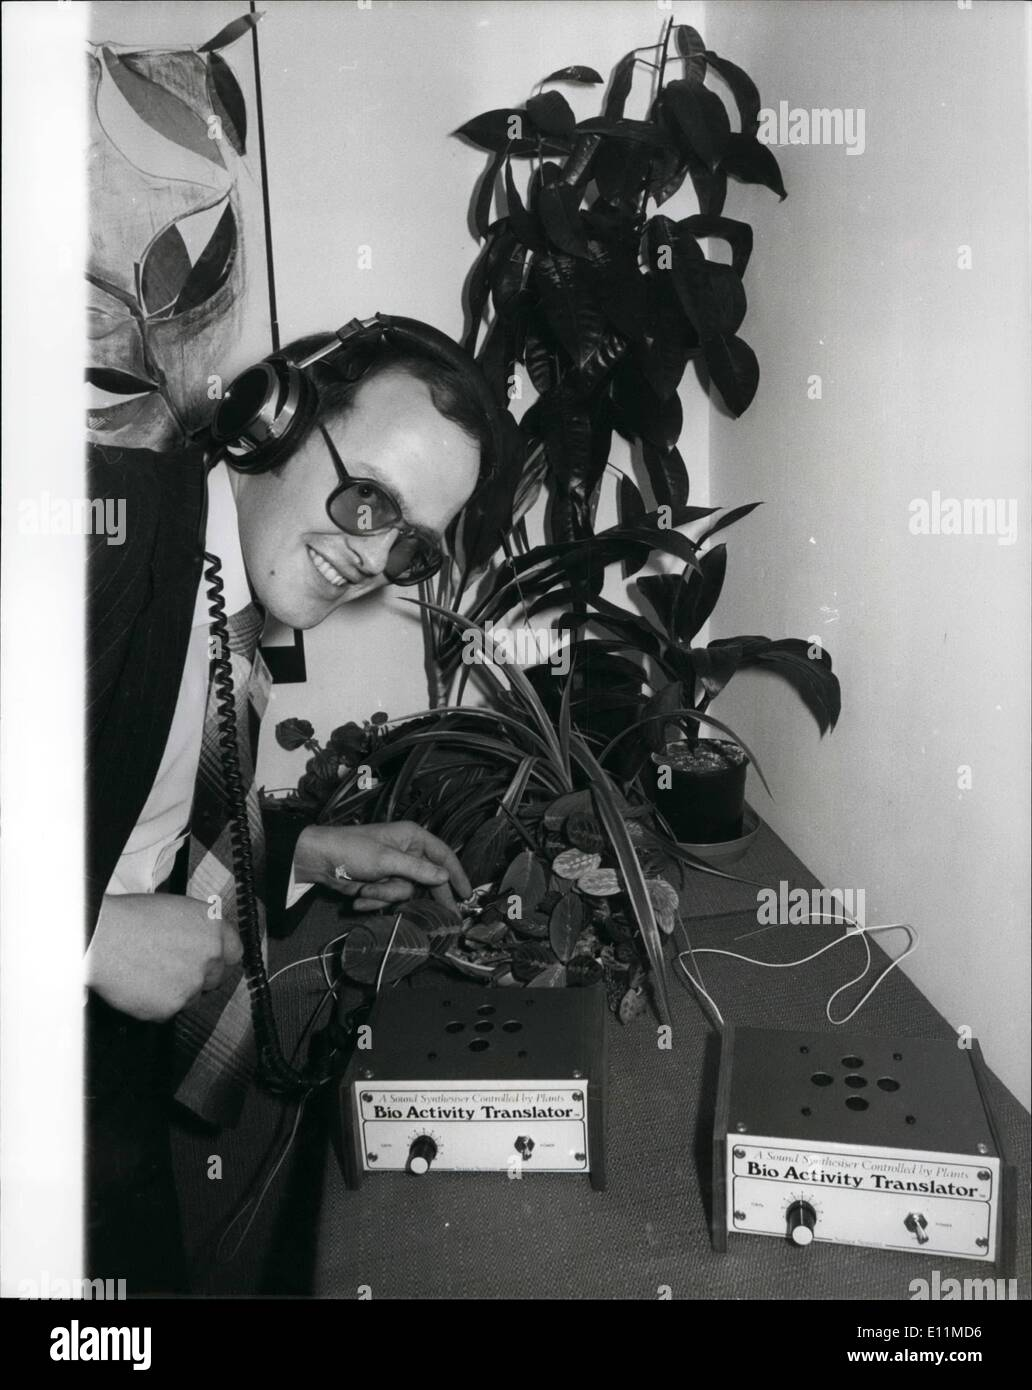 Nov. 11, 1978 - Bio Activity Translator to Listen to the Secret World of Plants.: For the firs time in the U.K. in Kit form, the revolutionary concept of a Biological Amplifier and sound synthesiser in one unit, the 'Bio Activity Translator' an electrode is clipped across the plant leaf, and the bicelectric signals are then detected by a special amplifier within the transtator, these signals are used to control the production of sound from a synthetic so that the sequences of notes produced follow in pitch rhythm and volume the ever changing signal from the plant - Stock Image